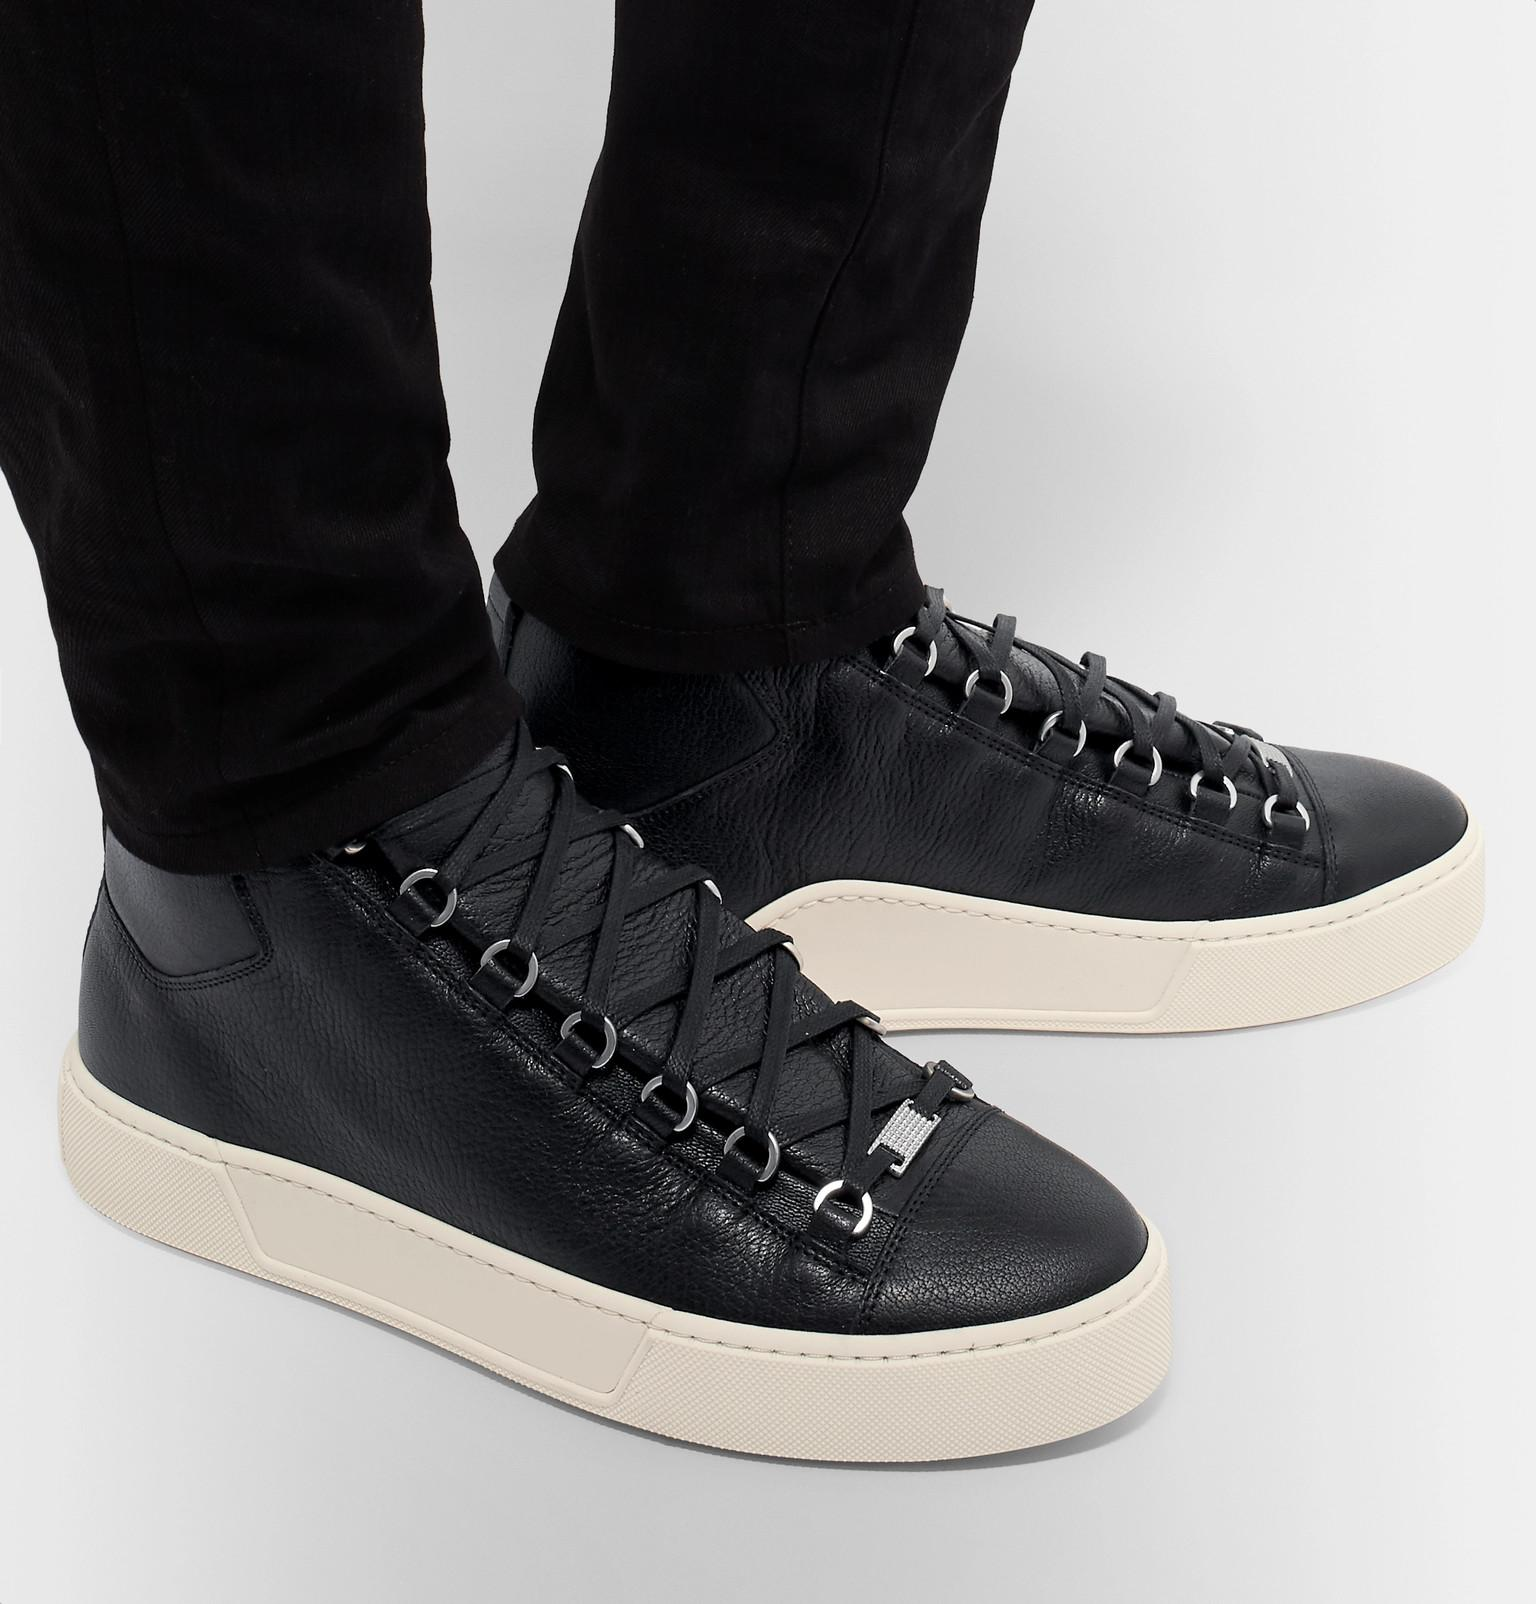 Balenciaga Arena Full-grain Leather High-top Sneakers in